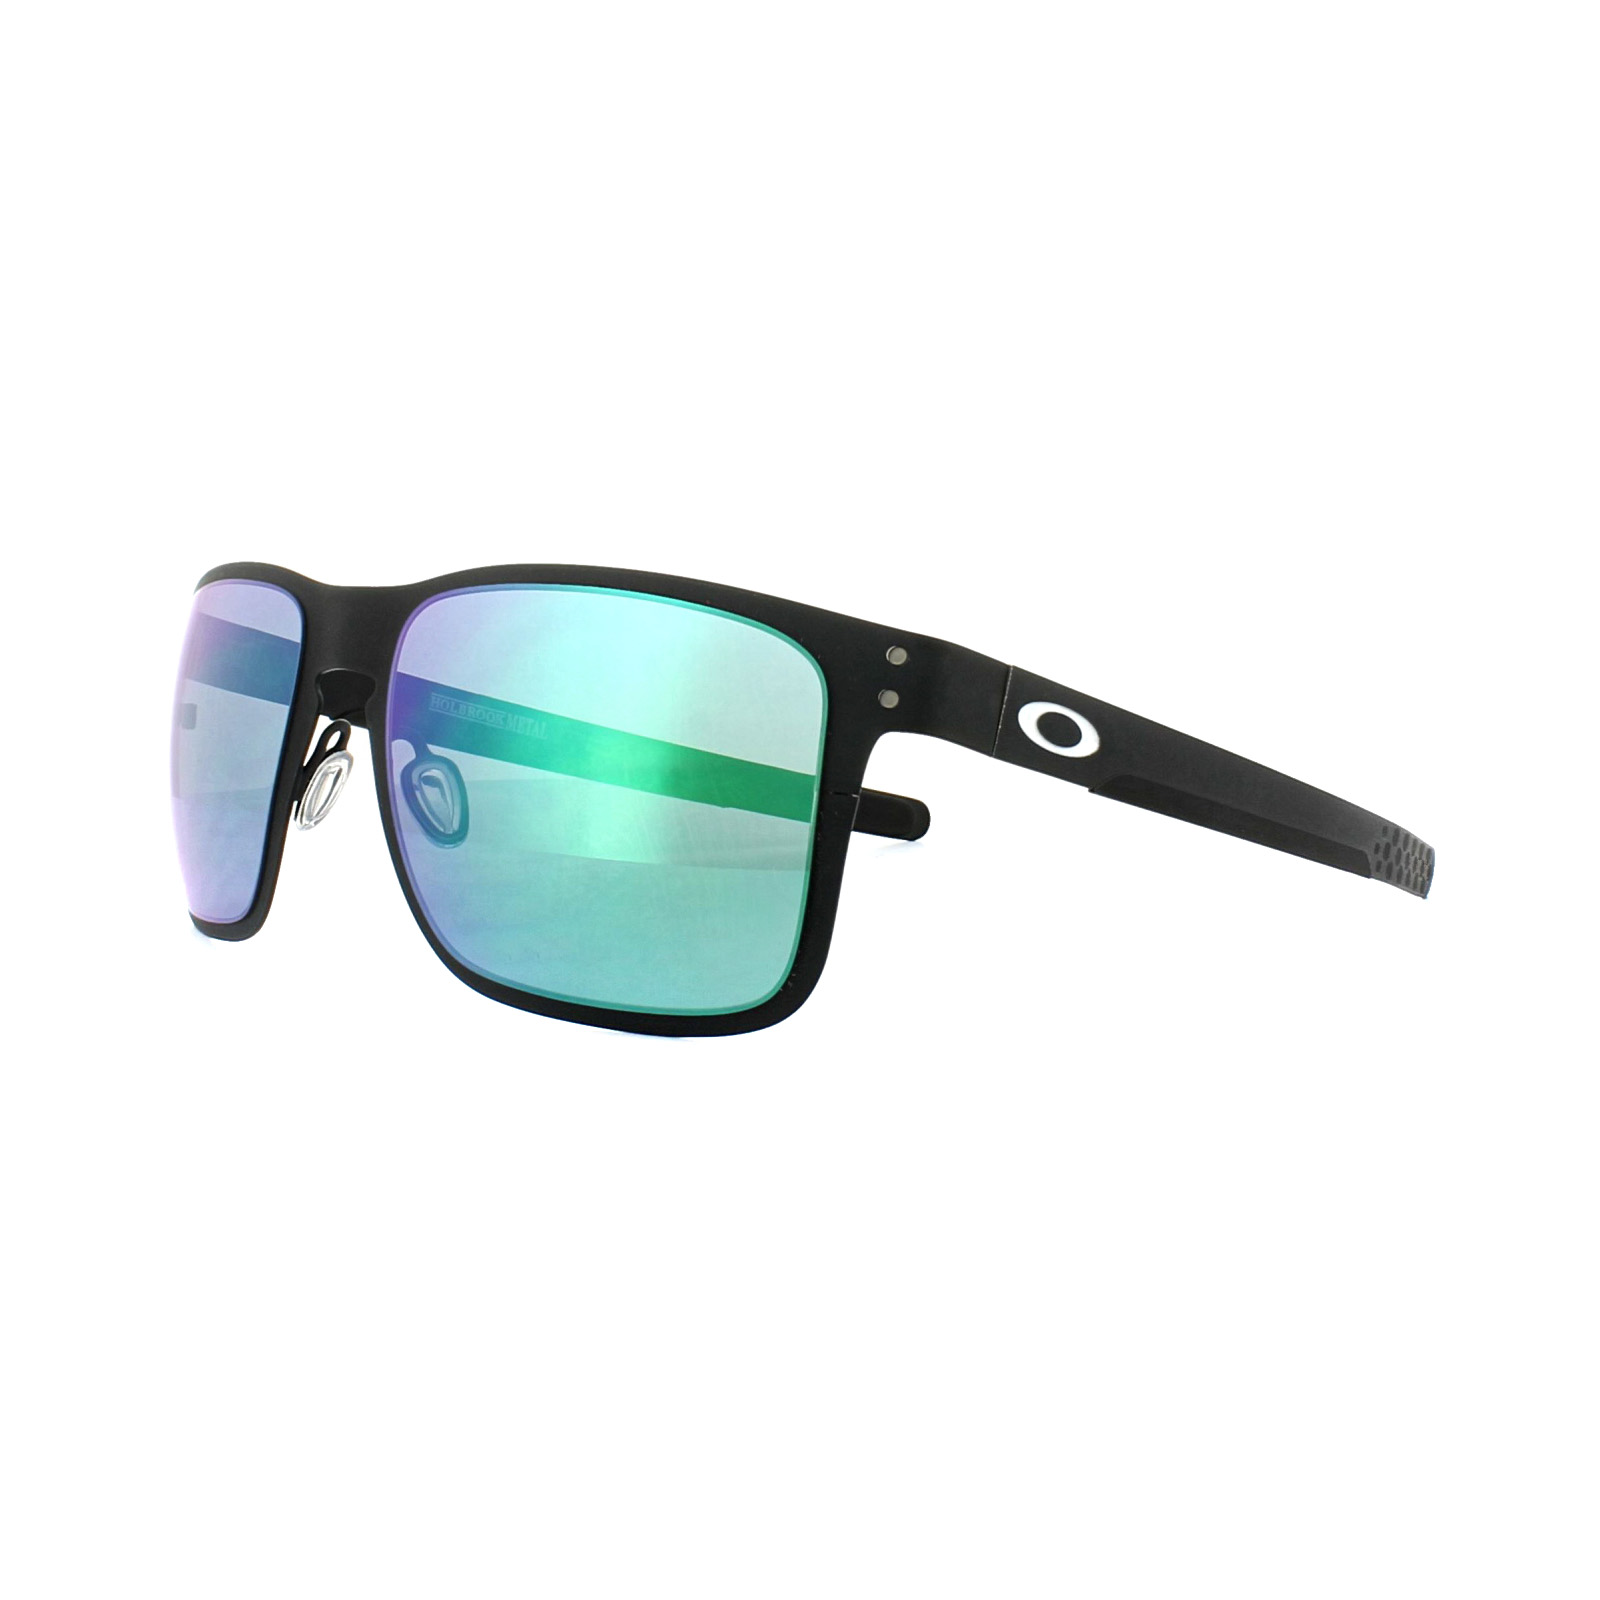 3834ae6c5f6 Details about Oakley Sunglasses Holbrook Metal OO4123-04 Matt Black Jade  Iridium